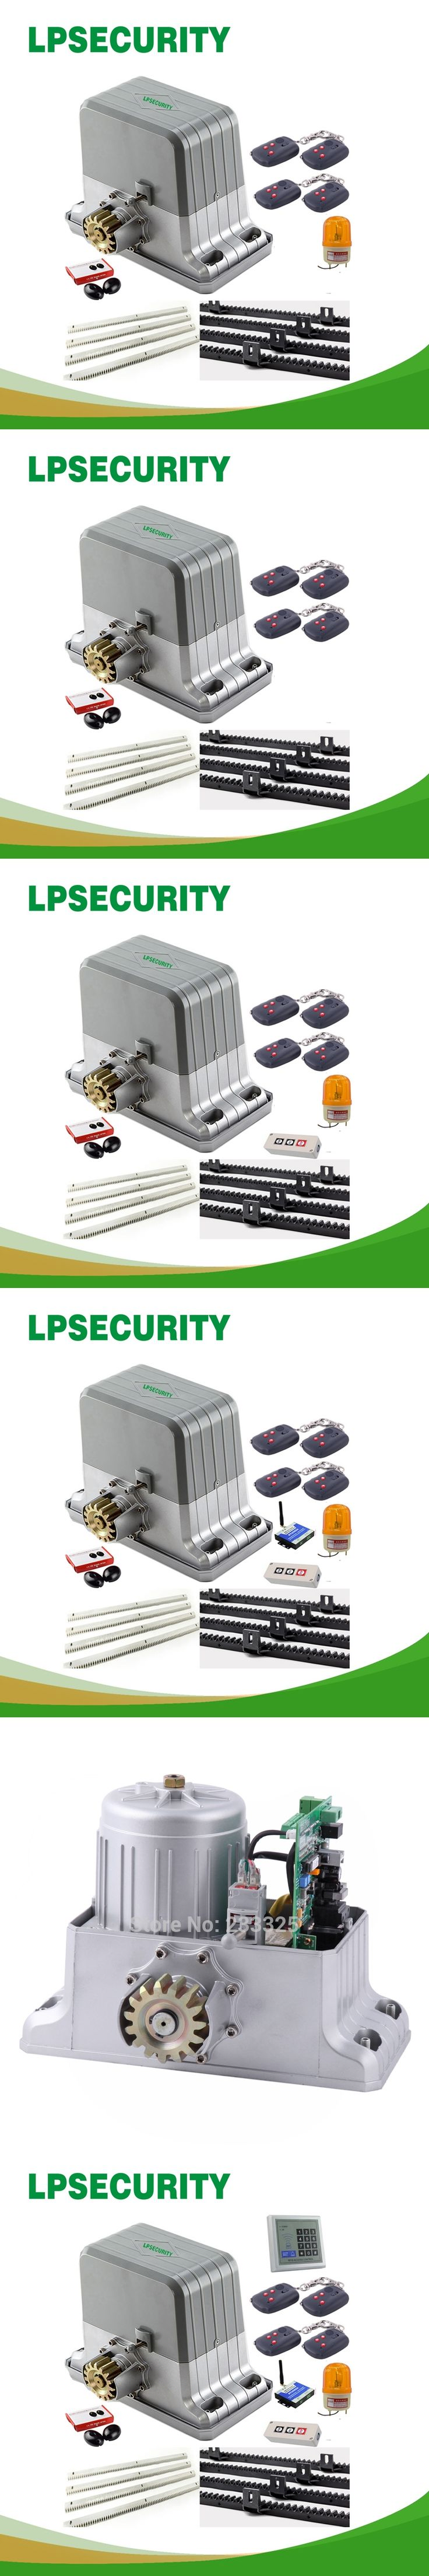 heavy duty 3600lbs 1800kg electric sliding gate motor/automatic gate opener engine with 4 remote controls 4m racks